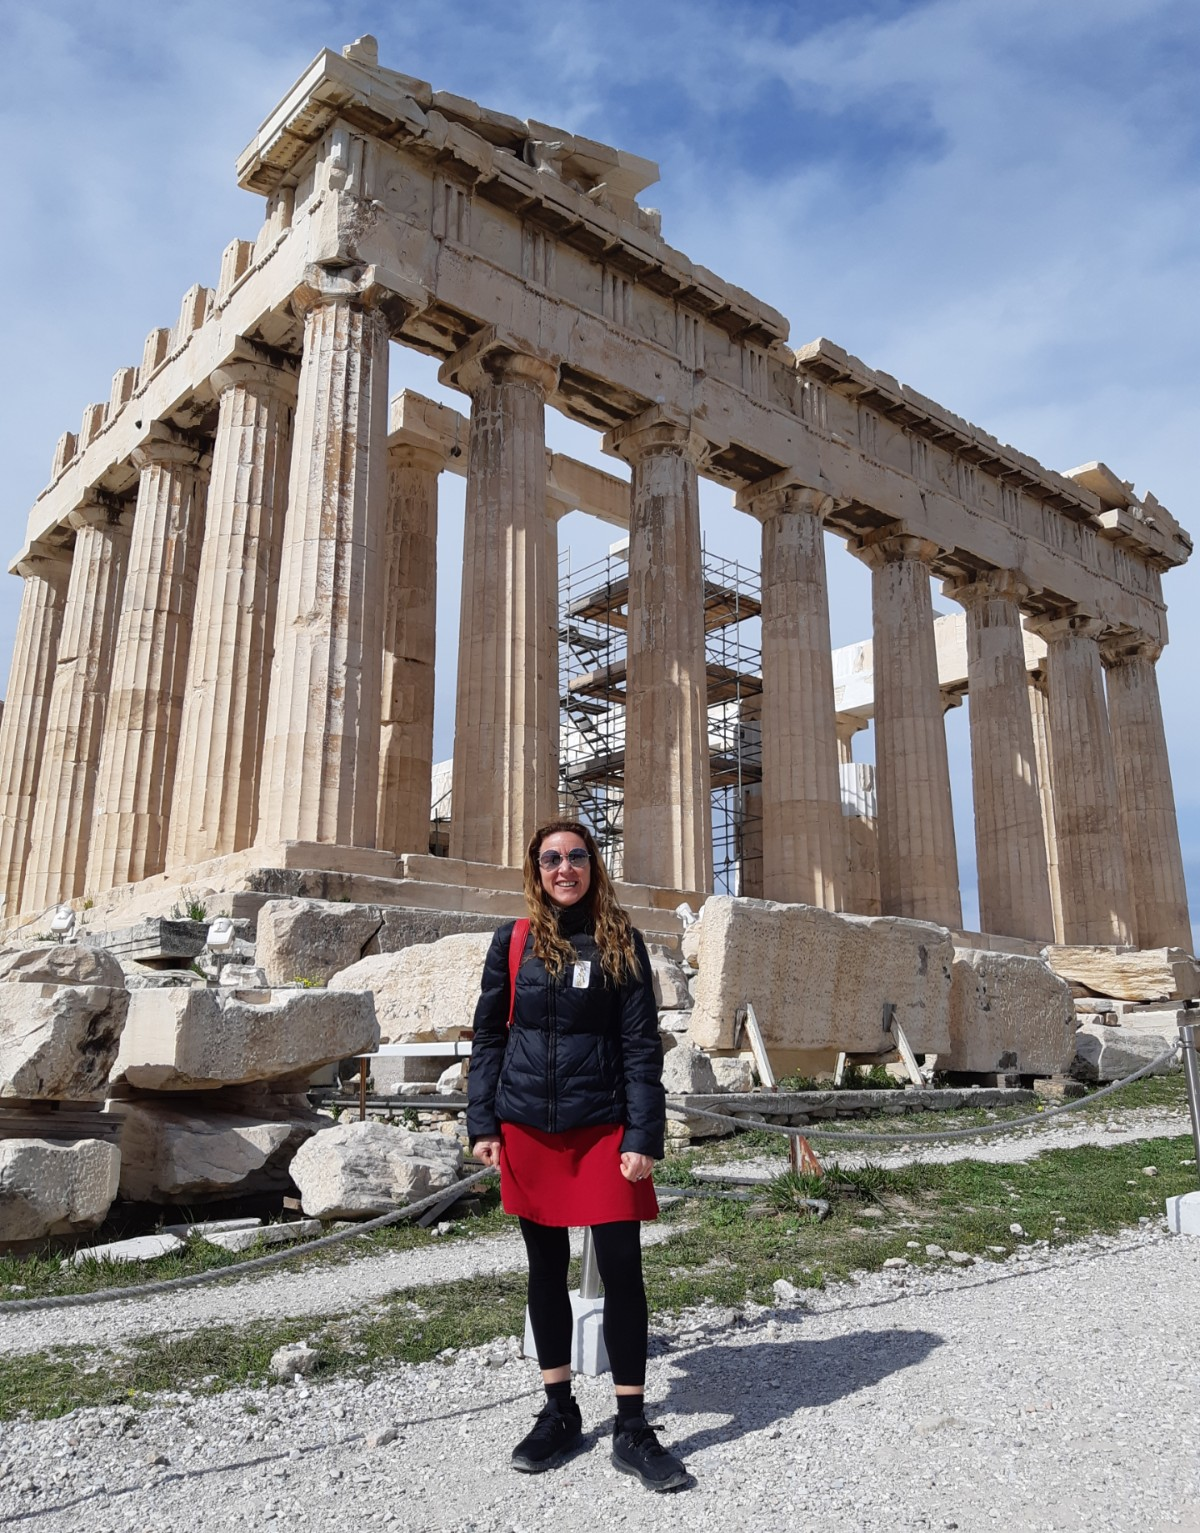 Vanessa in front of the Parthenon on the Acropolis